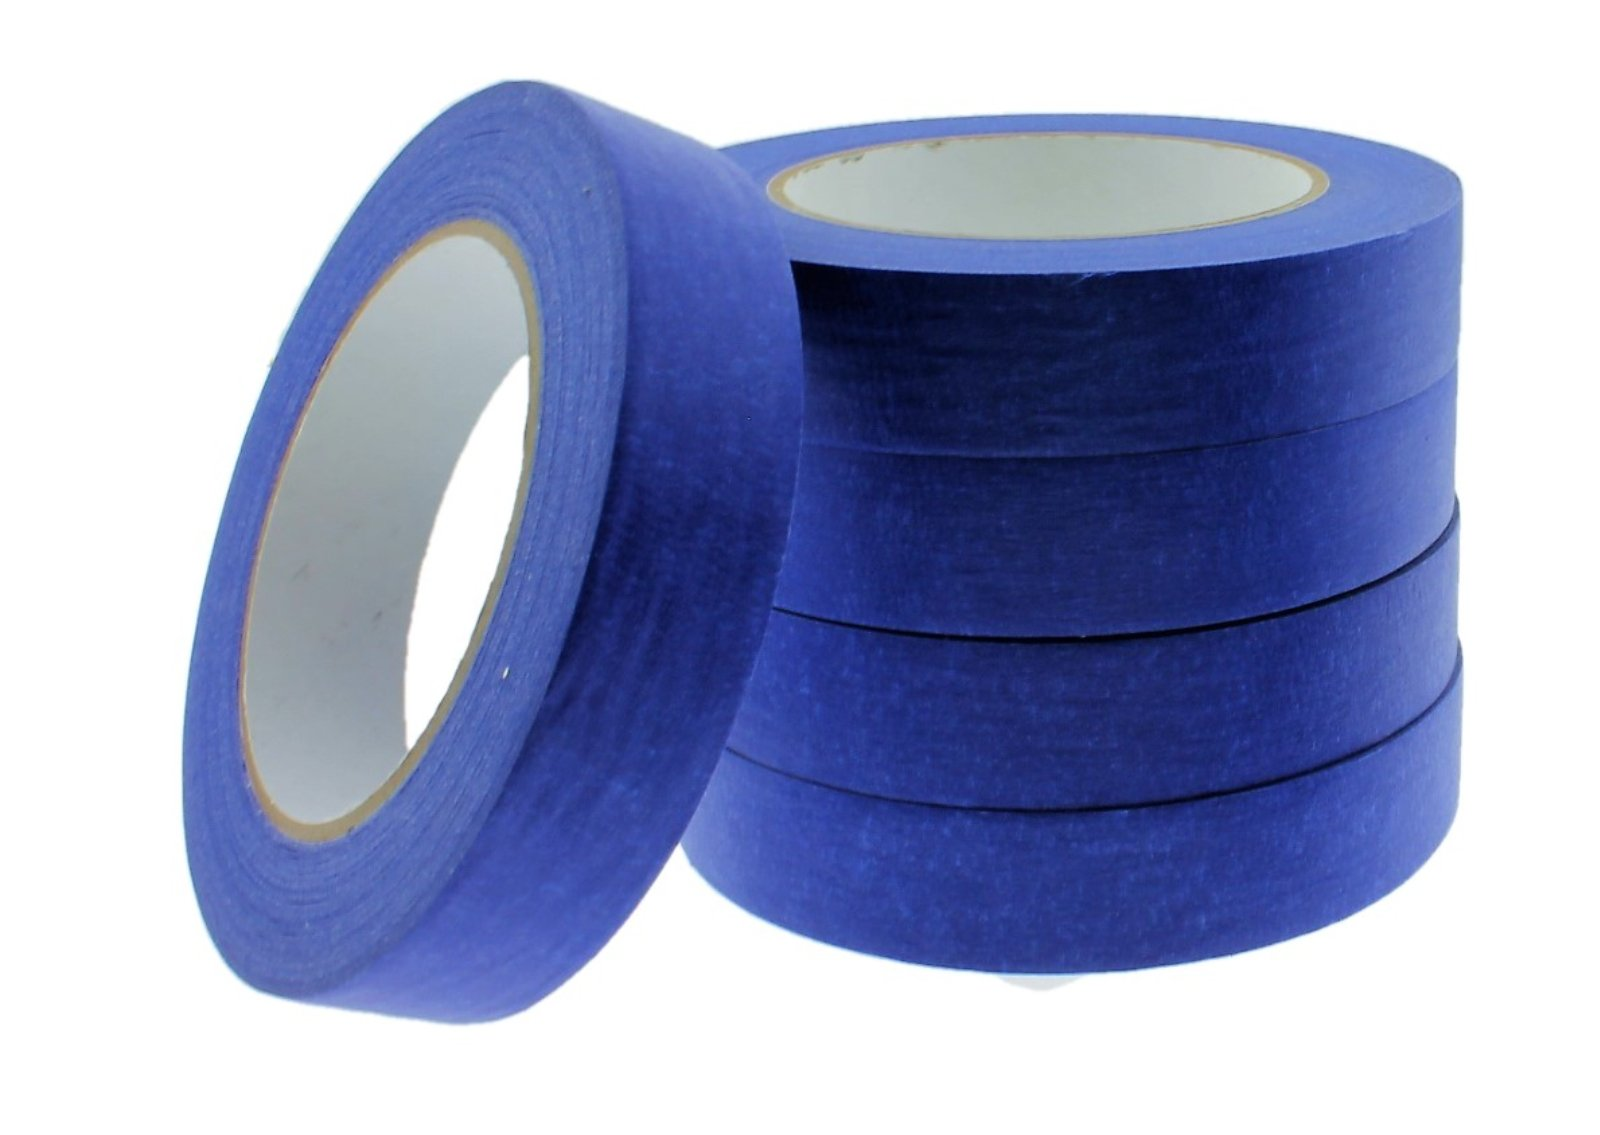 5pk 1'' in Blue Painters Tape EXTRA STICKY Blue Painting Walls Trim Paint Sharp Lines Mask Floors Auto Glass Multi-Surface Tape, Outdoor Use Ok. USA MADE 21 DAY CLEAN RELEASE NO BLEED OR RESIDUE! by TapeSmith